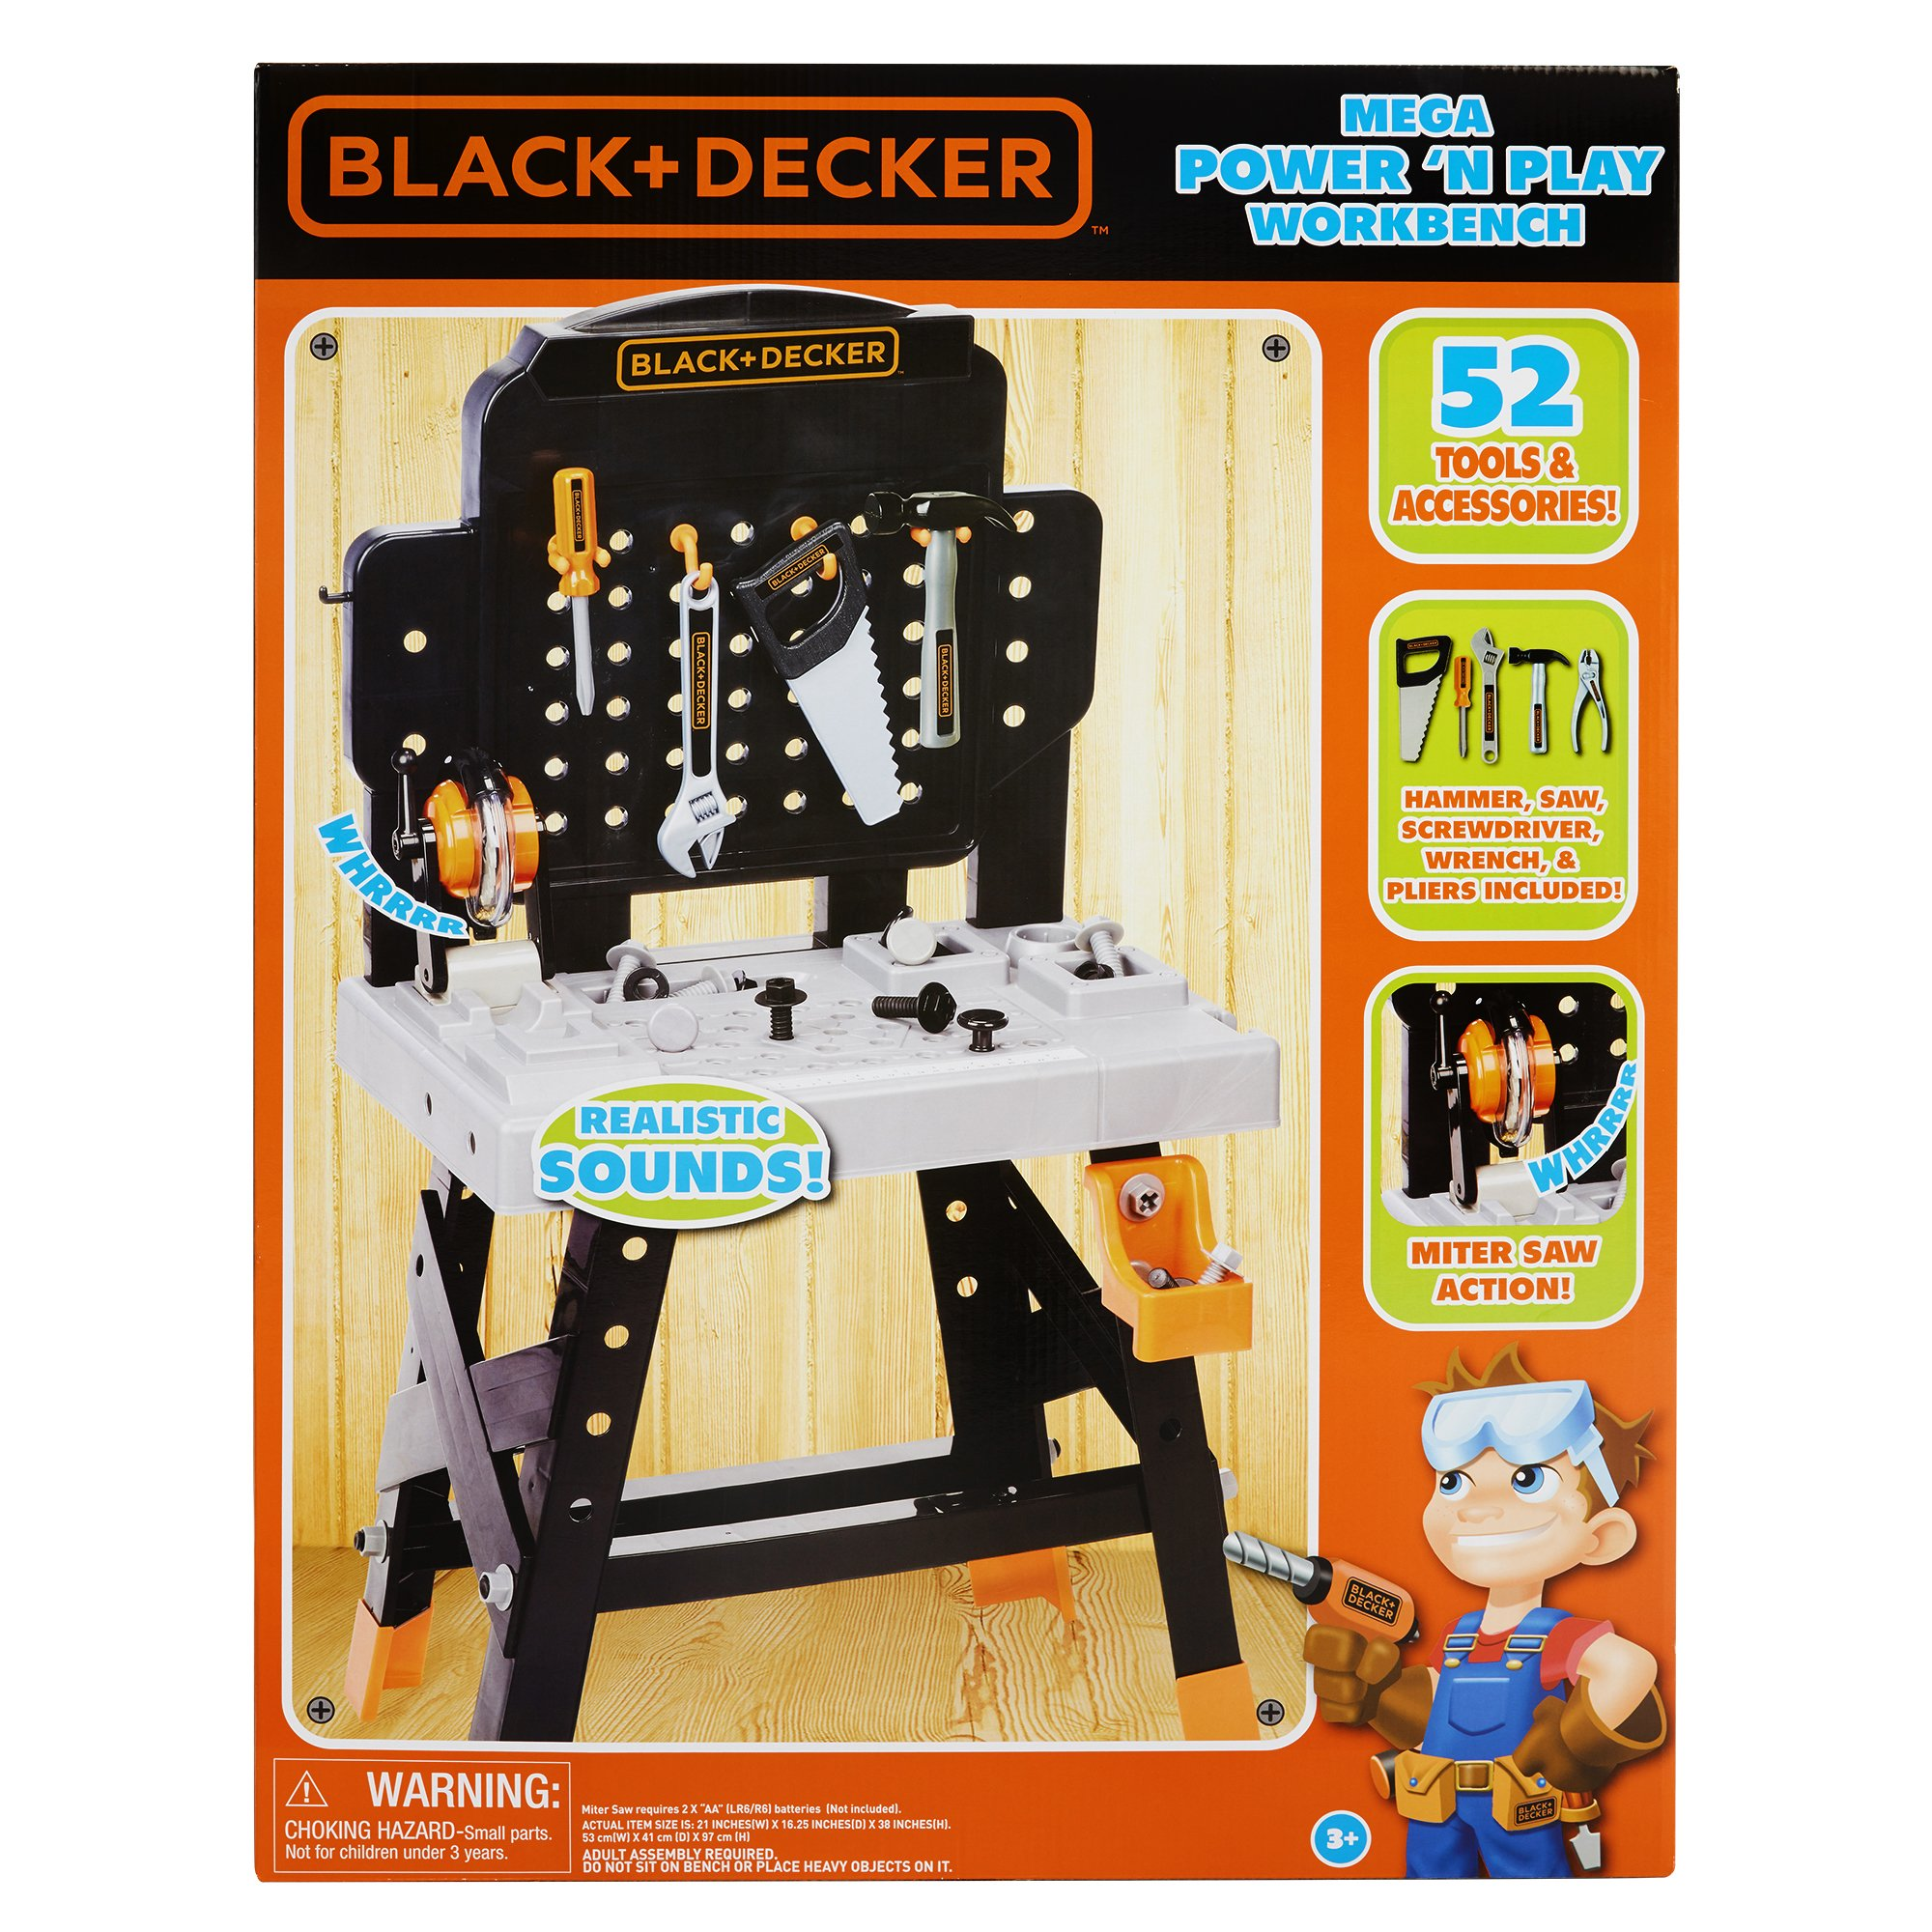 BLACK+DECKER 71382 Jr. Mega Power N' Play Workbench with Realistic Sounds! - 52 Tools & Accessories by BLACK+DECKER (Image #6)